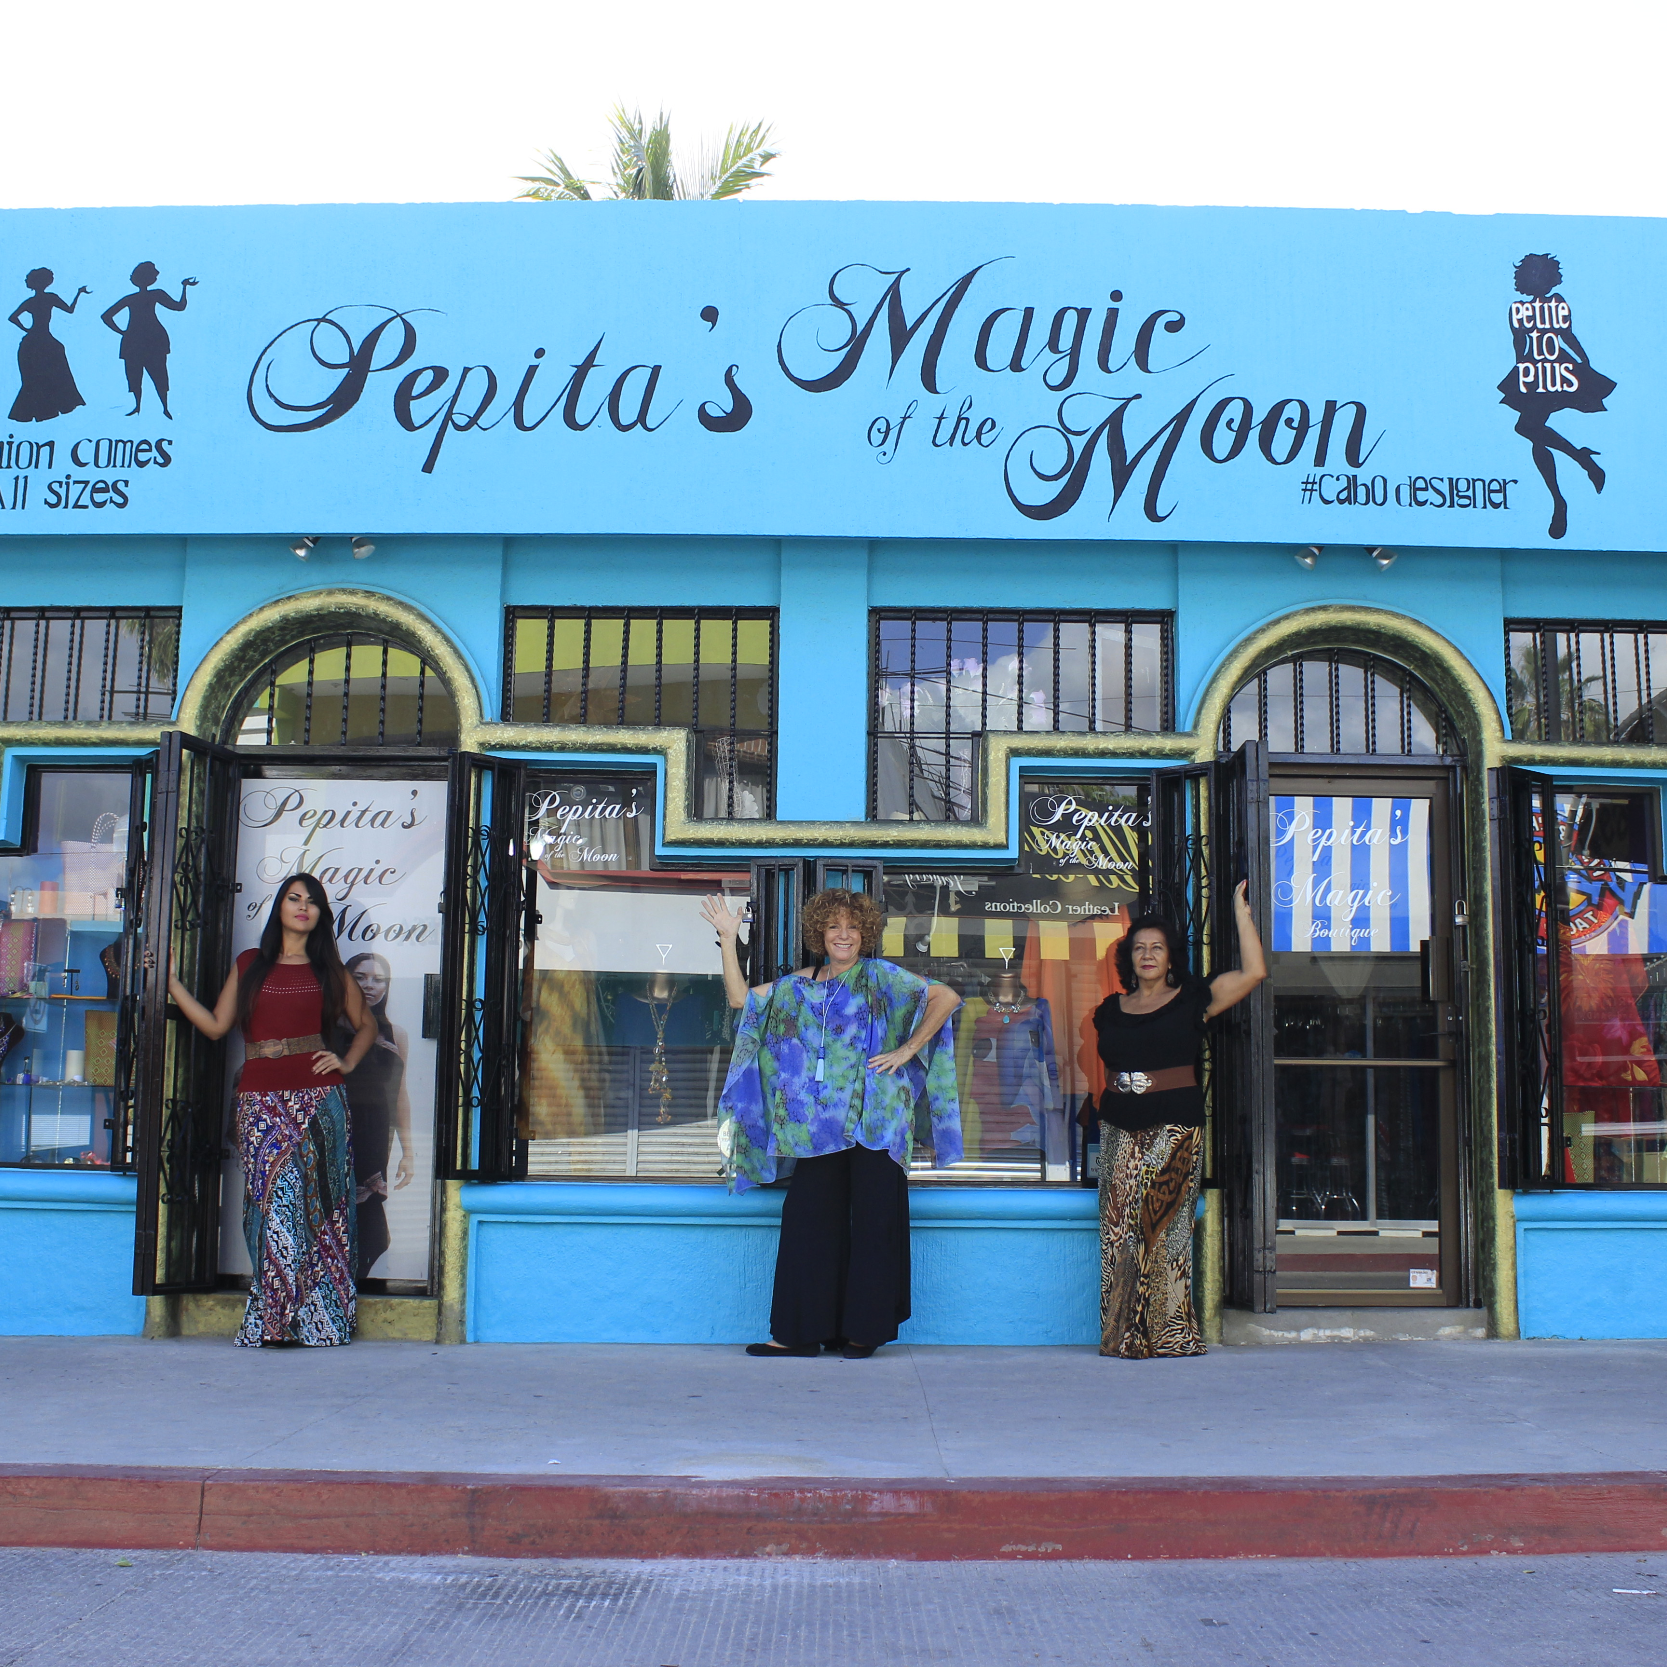 Pepita's Magic of the Moon in Mexico